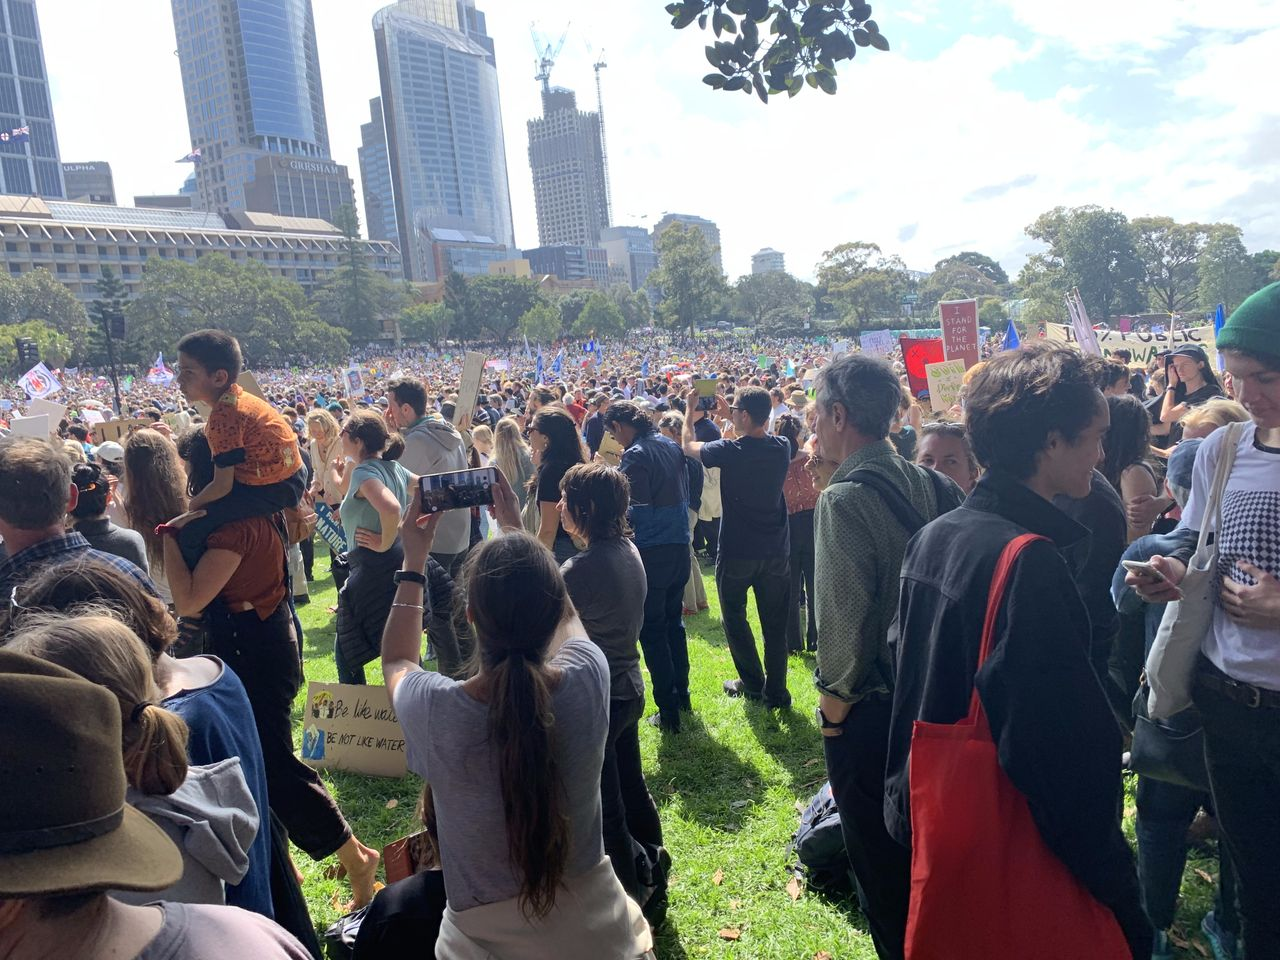 The protest in Sydney